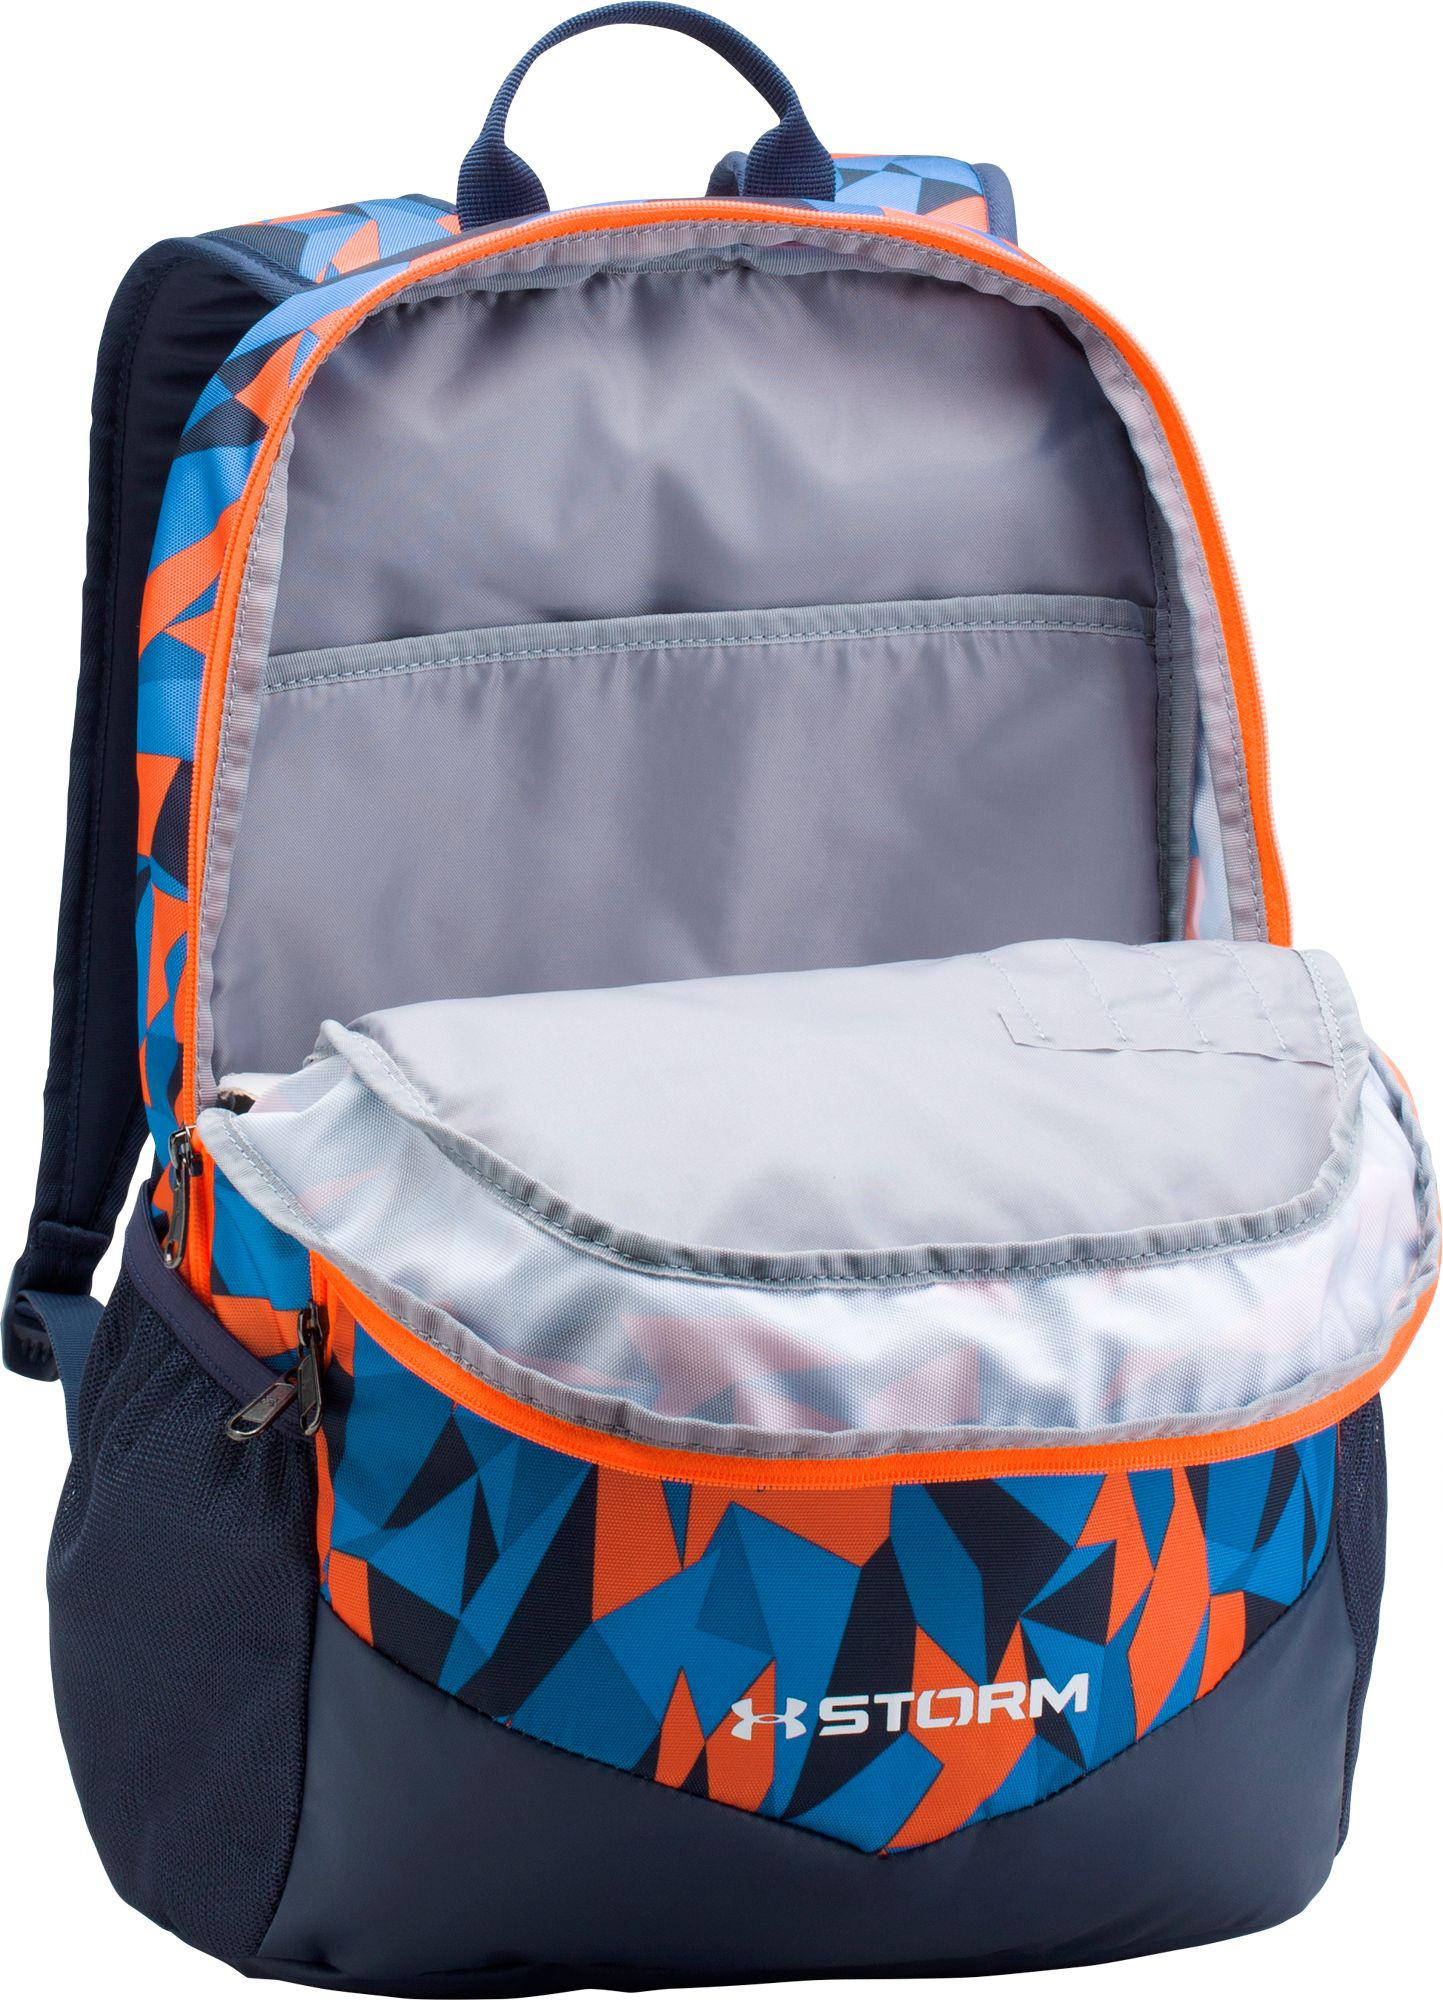 Lyst - Under Armour Youth Scrimmage Backpack in Blue ea50ad4ec0e22